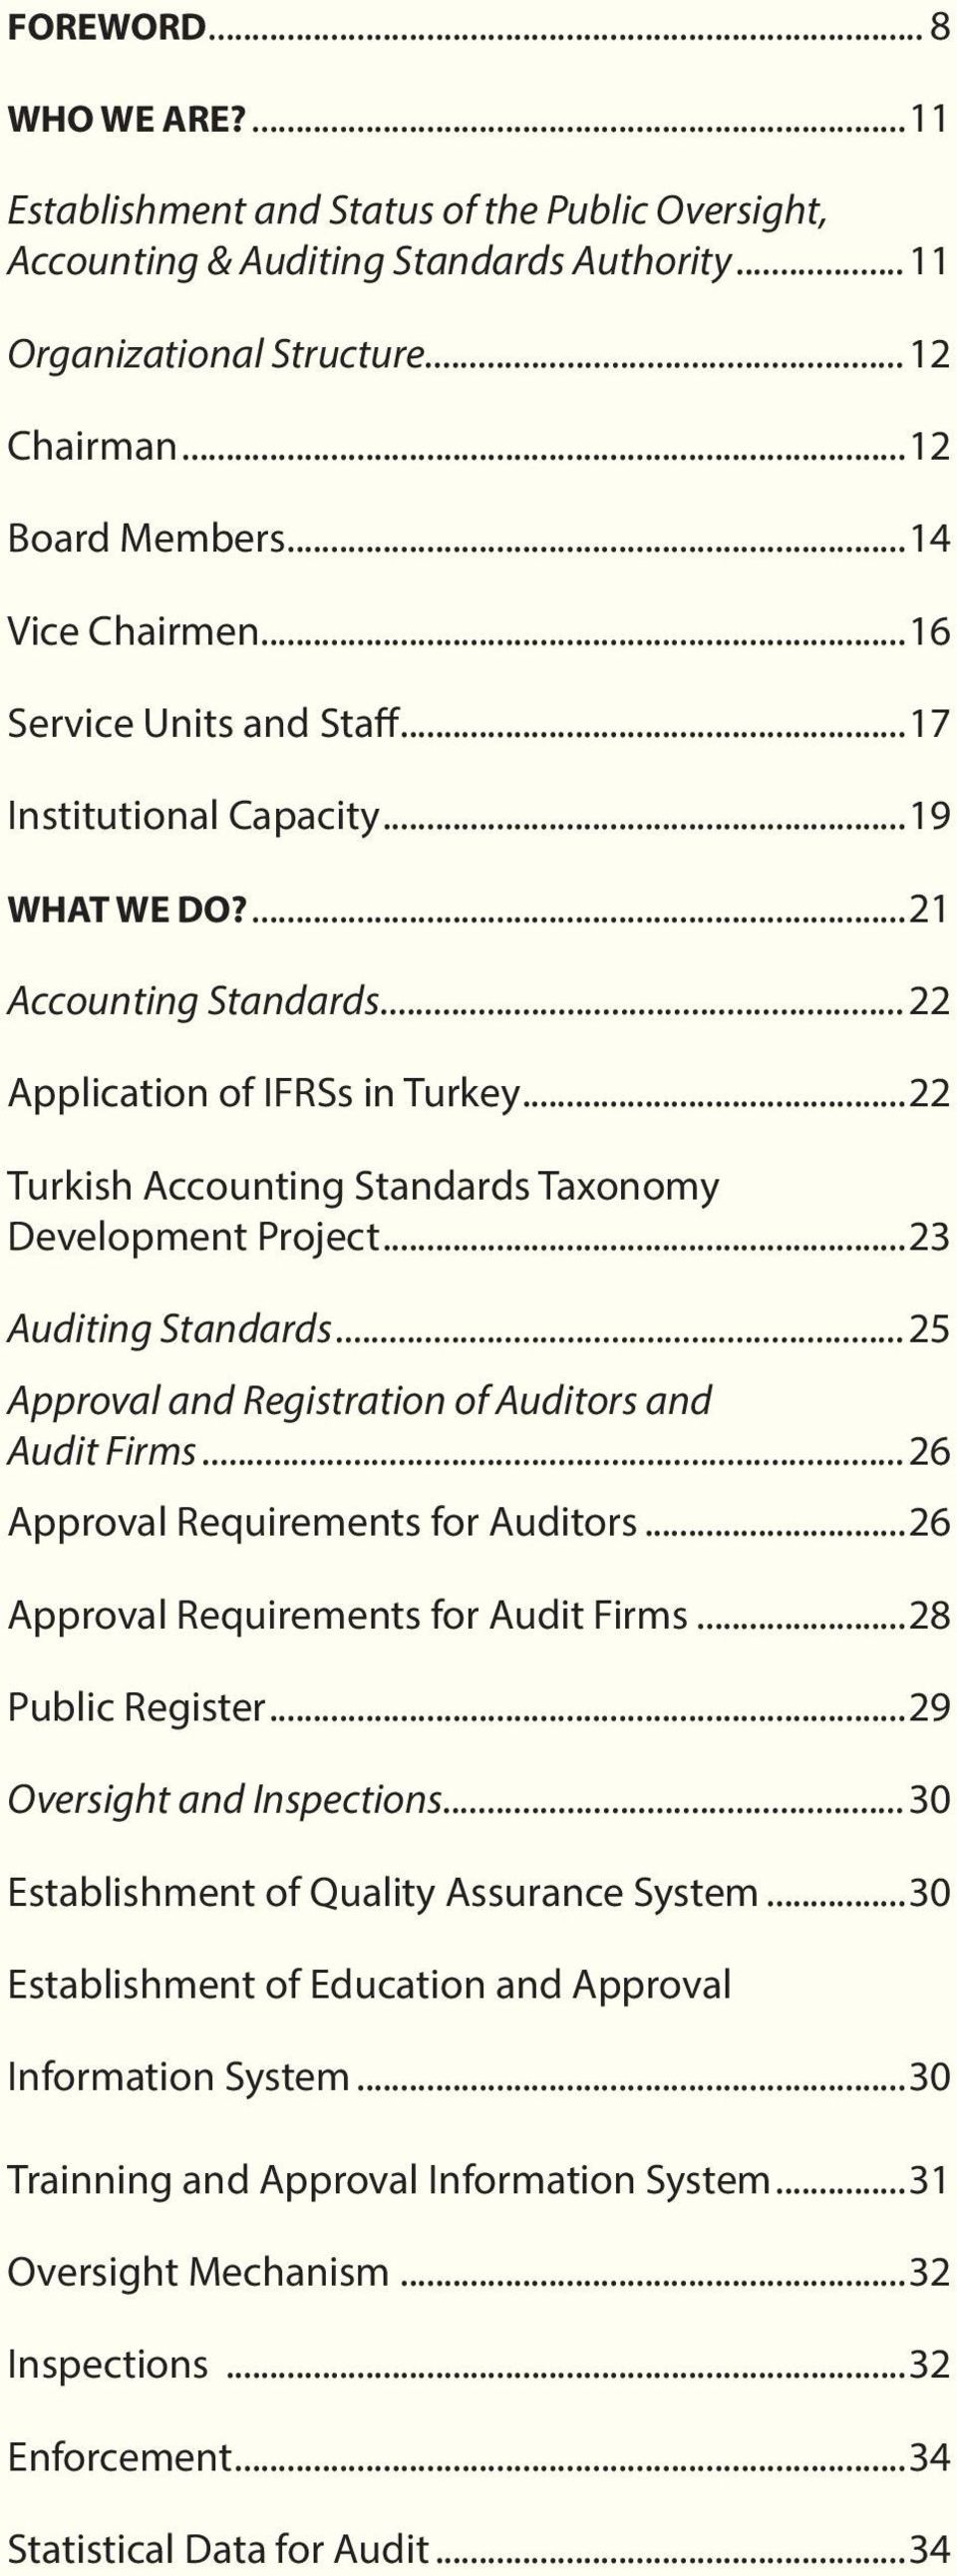 ..22 Turkish Accounting Standards Taxonomy Development Project...23 Auditing Standards...25 Approval and Registration of Auditors and Audit Firms...26 Approval Requirements for Auditors.